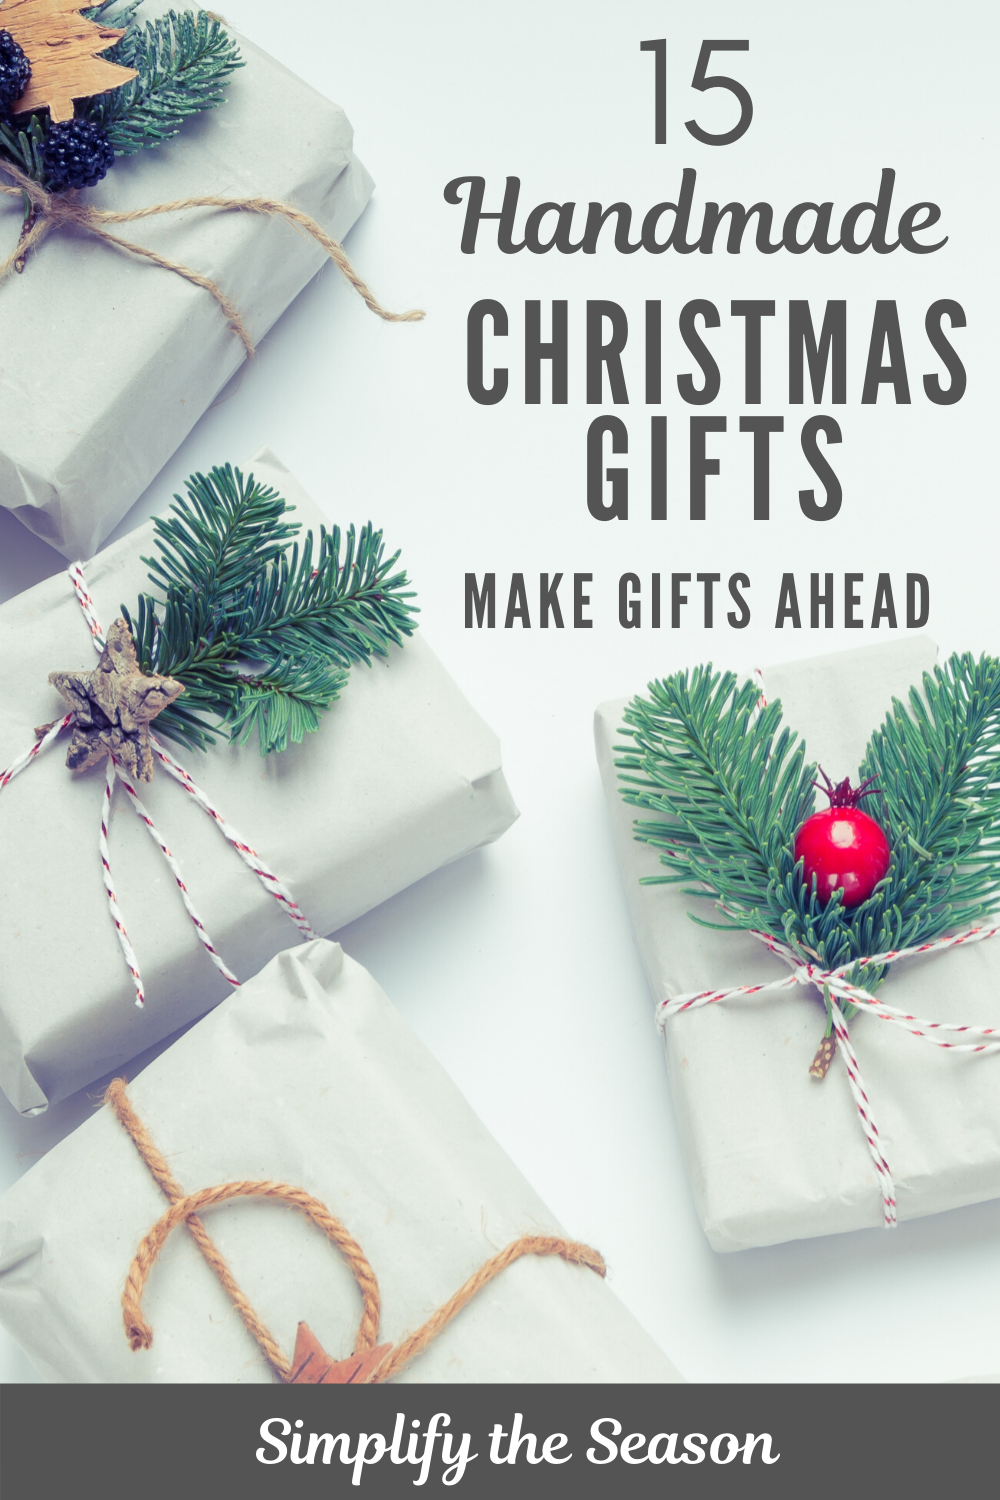 15 Homemade Christmas Gifts To Make Ahead Day To Day Adventures In 2020 Handmade Christmas Gifts Homemade Christmas Gifts Christmas Gifts To Make